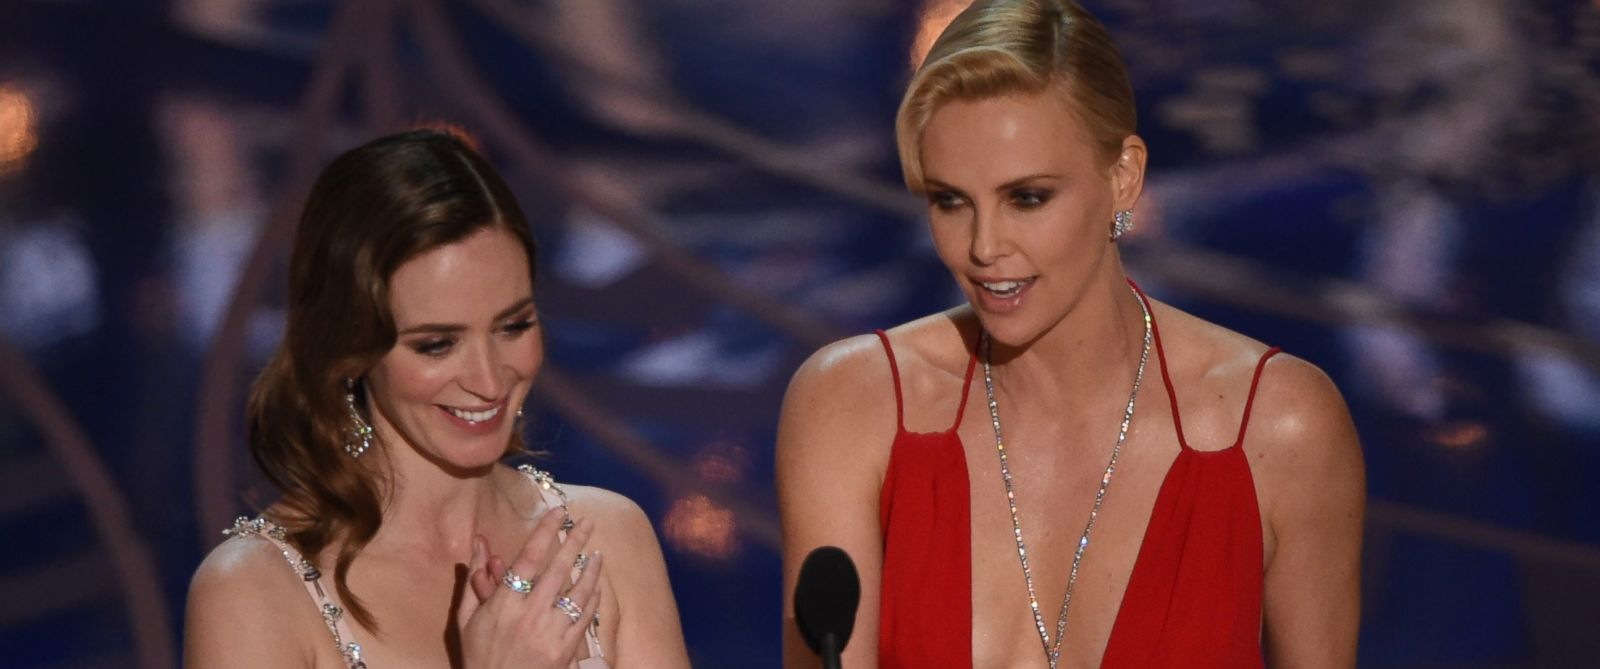 Oscars 2016: Watch The Official ABC Backstage Stream - ABC ...